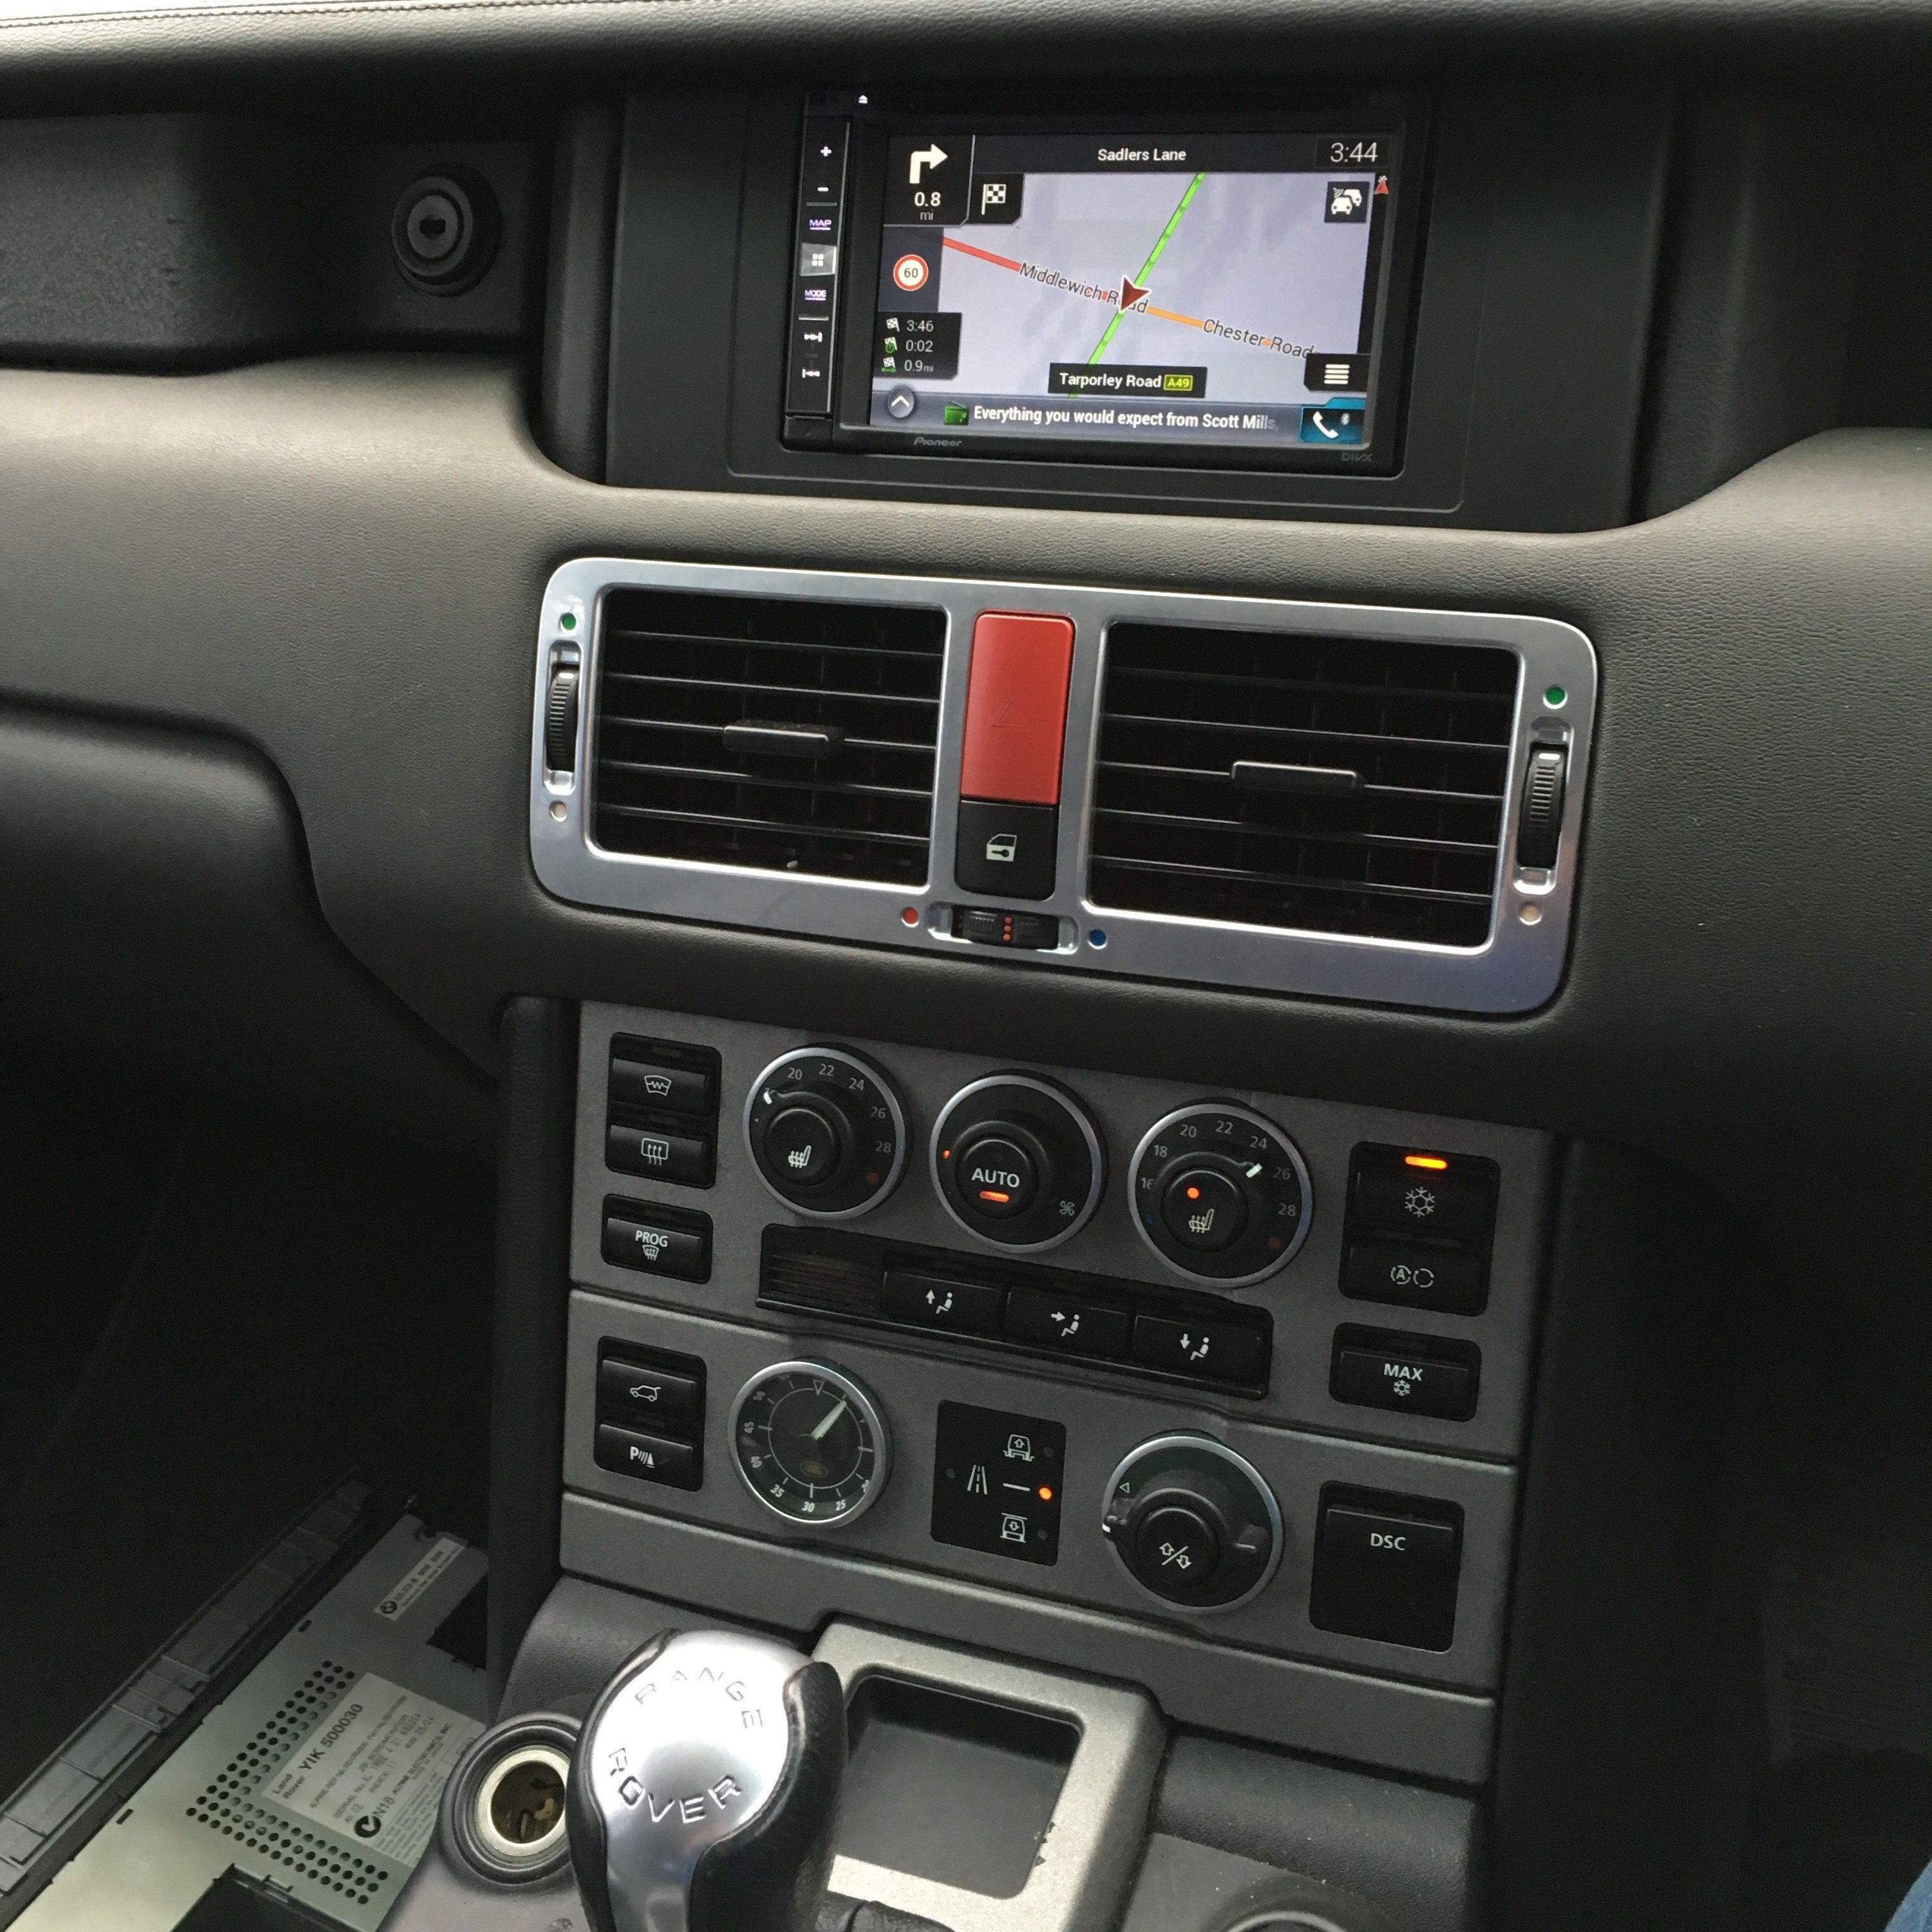 Best Free Sat Nav For Iphone Range Rover Vogue With Pioneer Avic F980dab